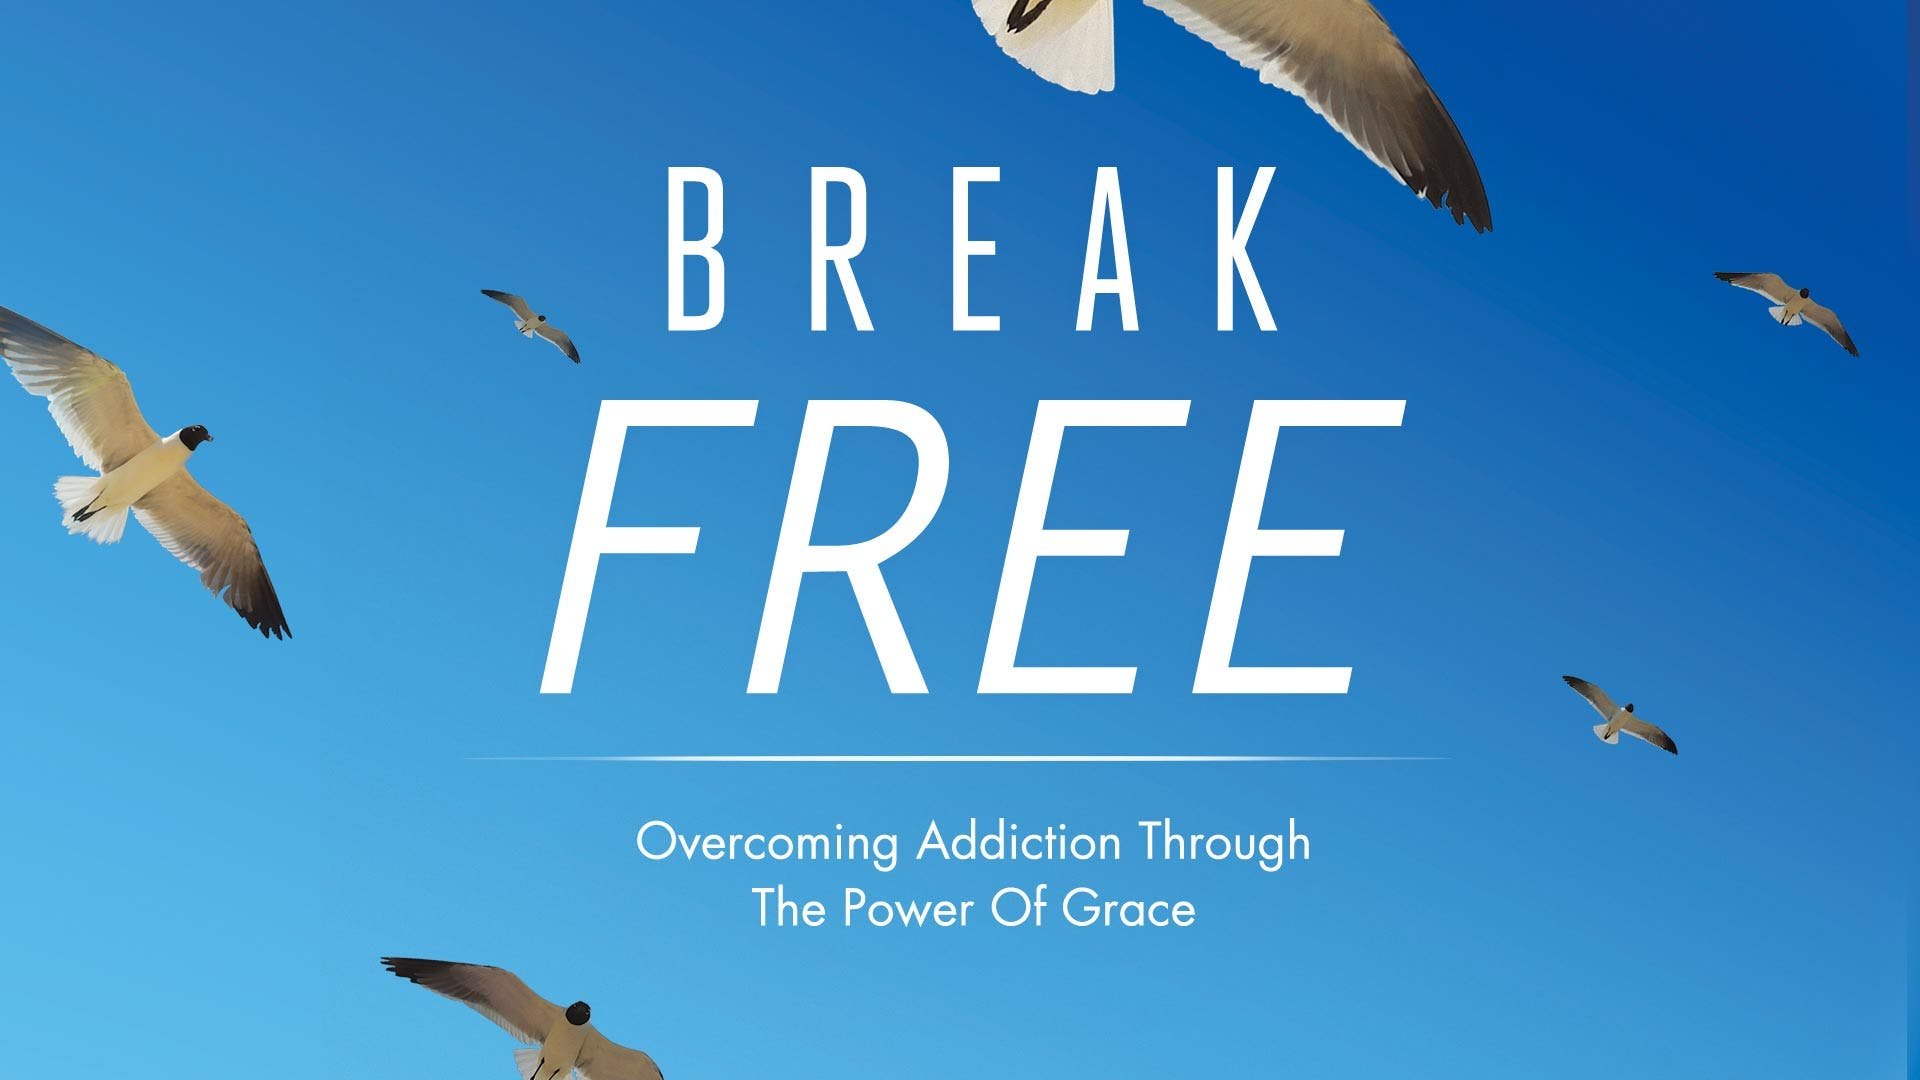 Break Free! Overcoming Addiction Through The Power Of Grace